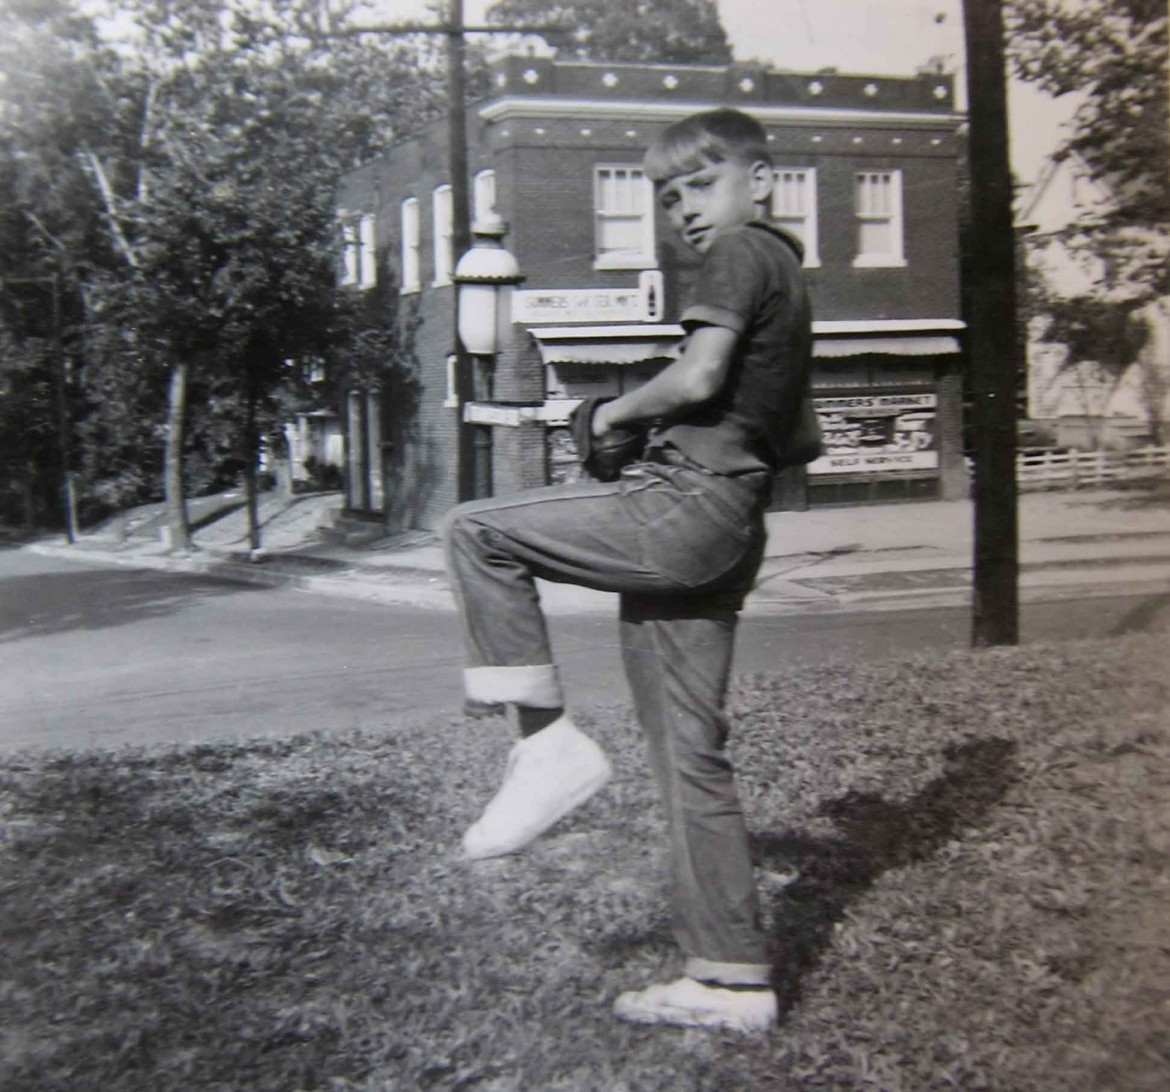 Let's start with this photo because it has a good view of the building. The young man, probably a neighbor, is Chester Rose and the year is 1955.